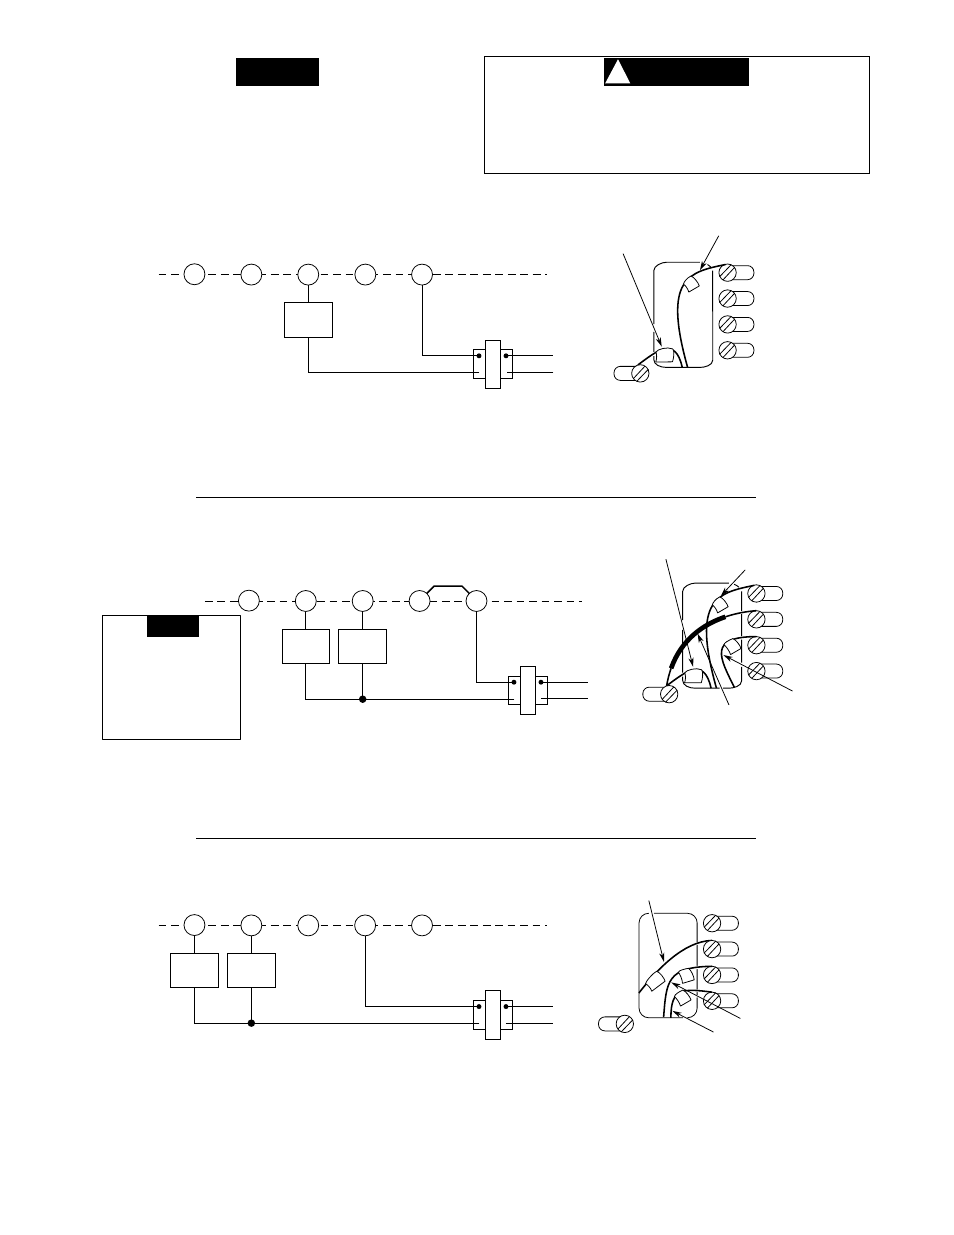 Grc Y W Rh White Rodgers 1f90w 51 User Manual Page 4 8 With 3 Wire Thermostat Wiring On Typical Diagram